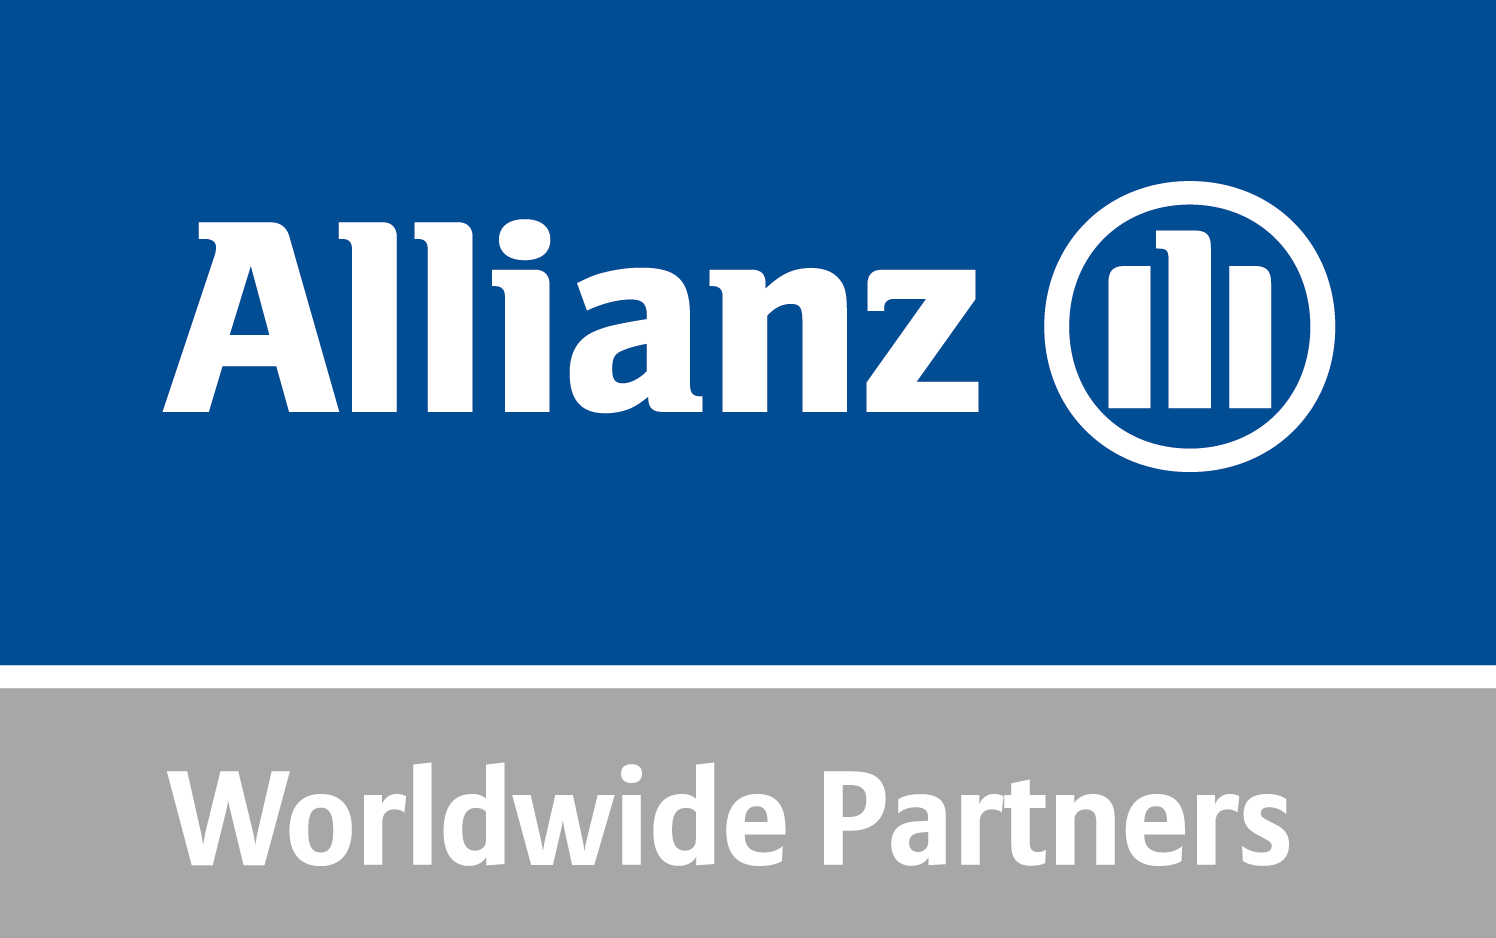 Allianz Worldwide Partner